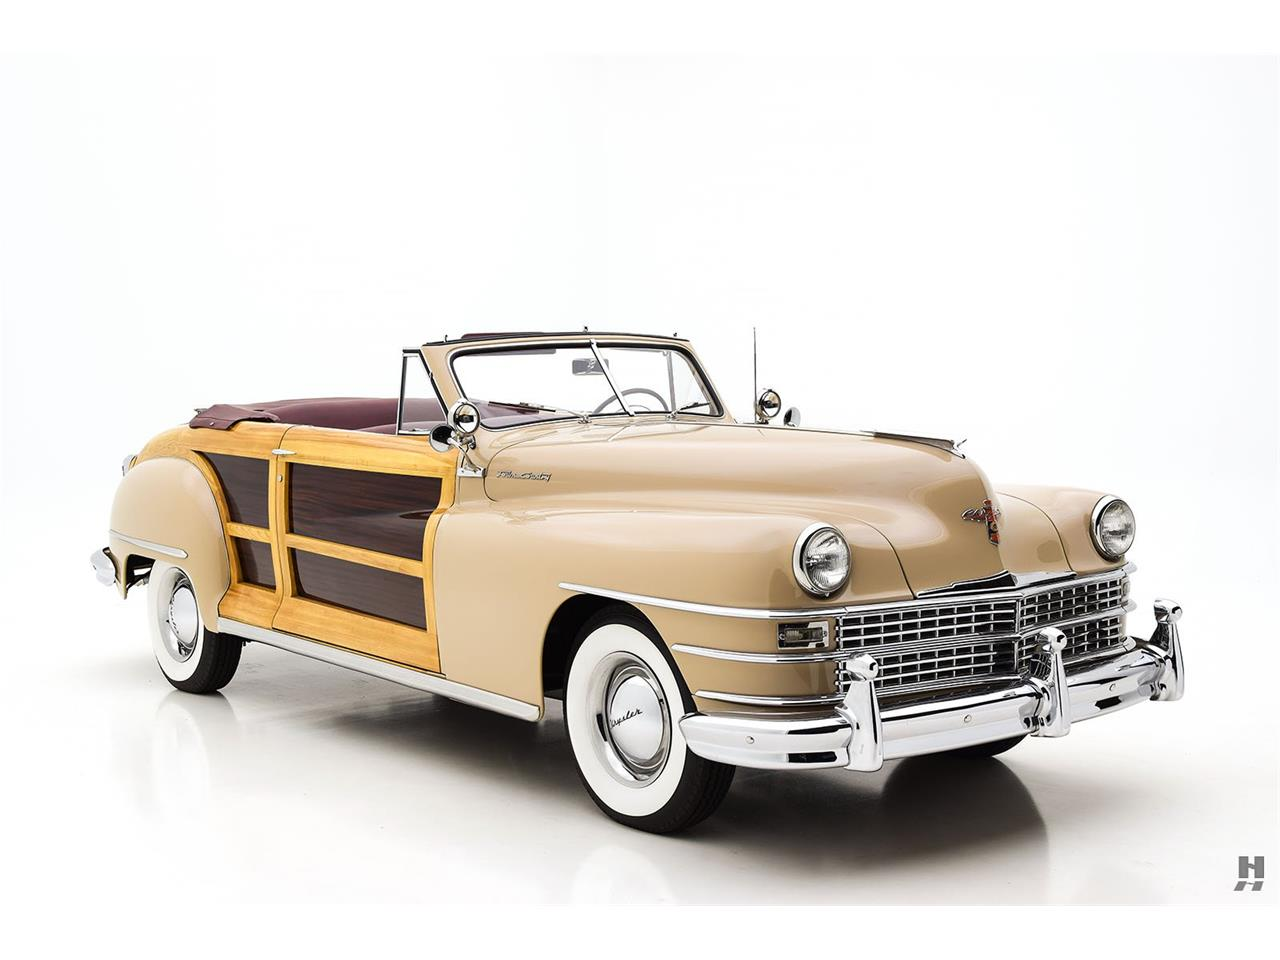 Large Picture of '47 Chrysler Town & Country - $198,500.00 Offered by Hyman Ltd. Classic Cars - L804